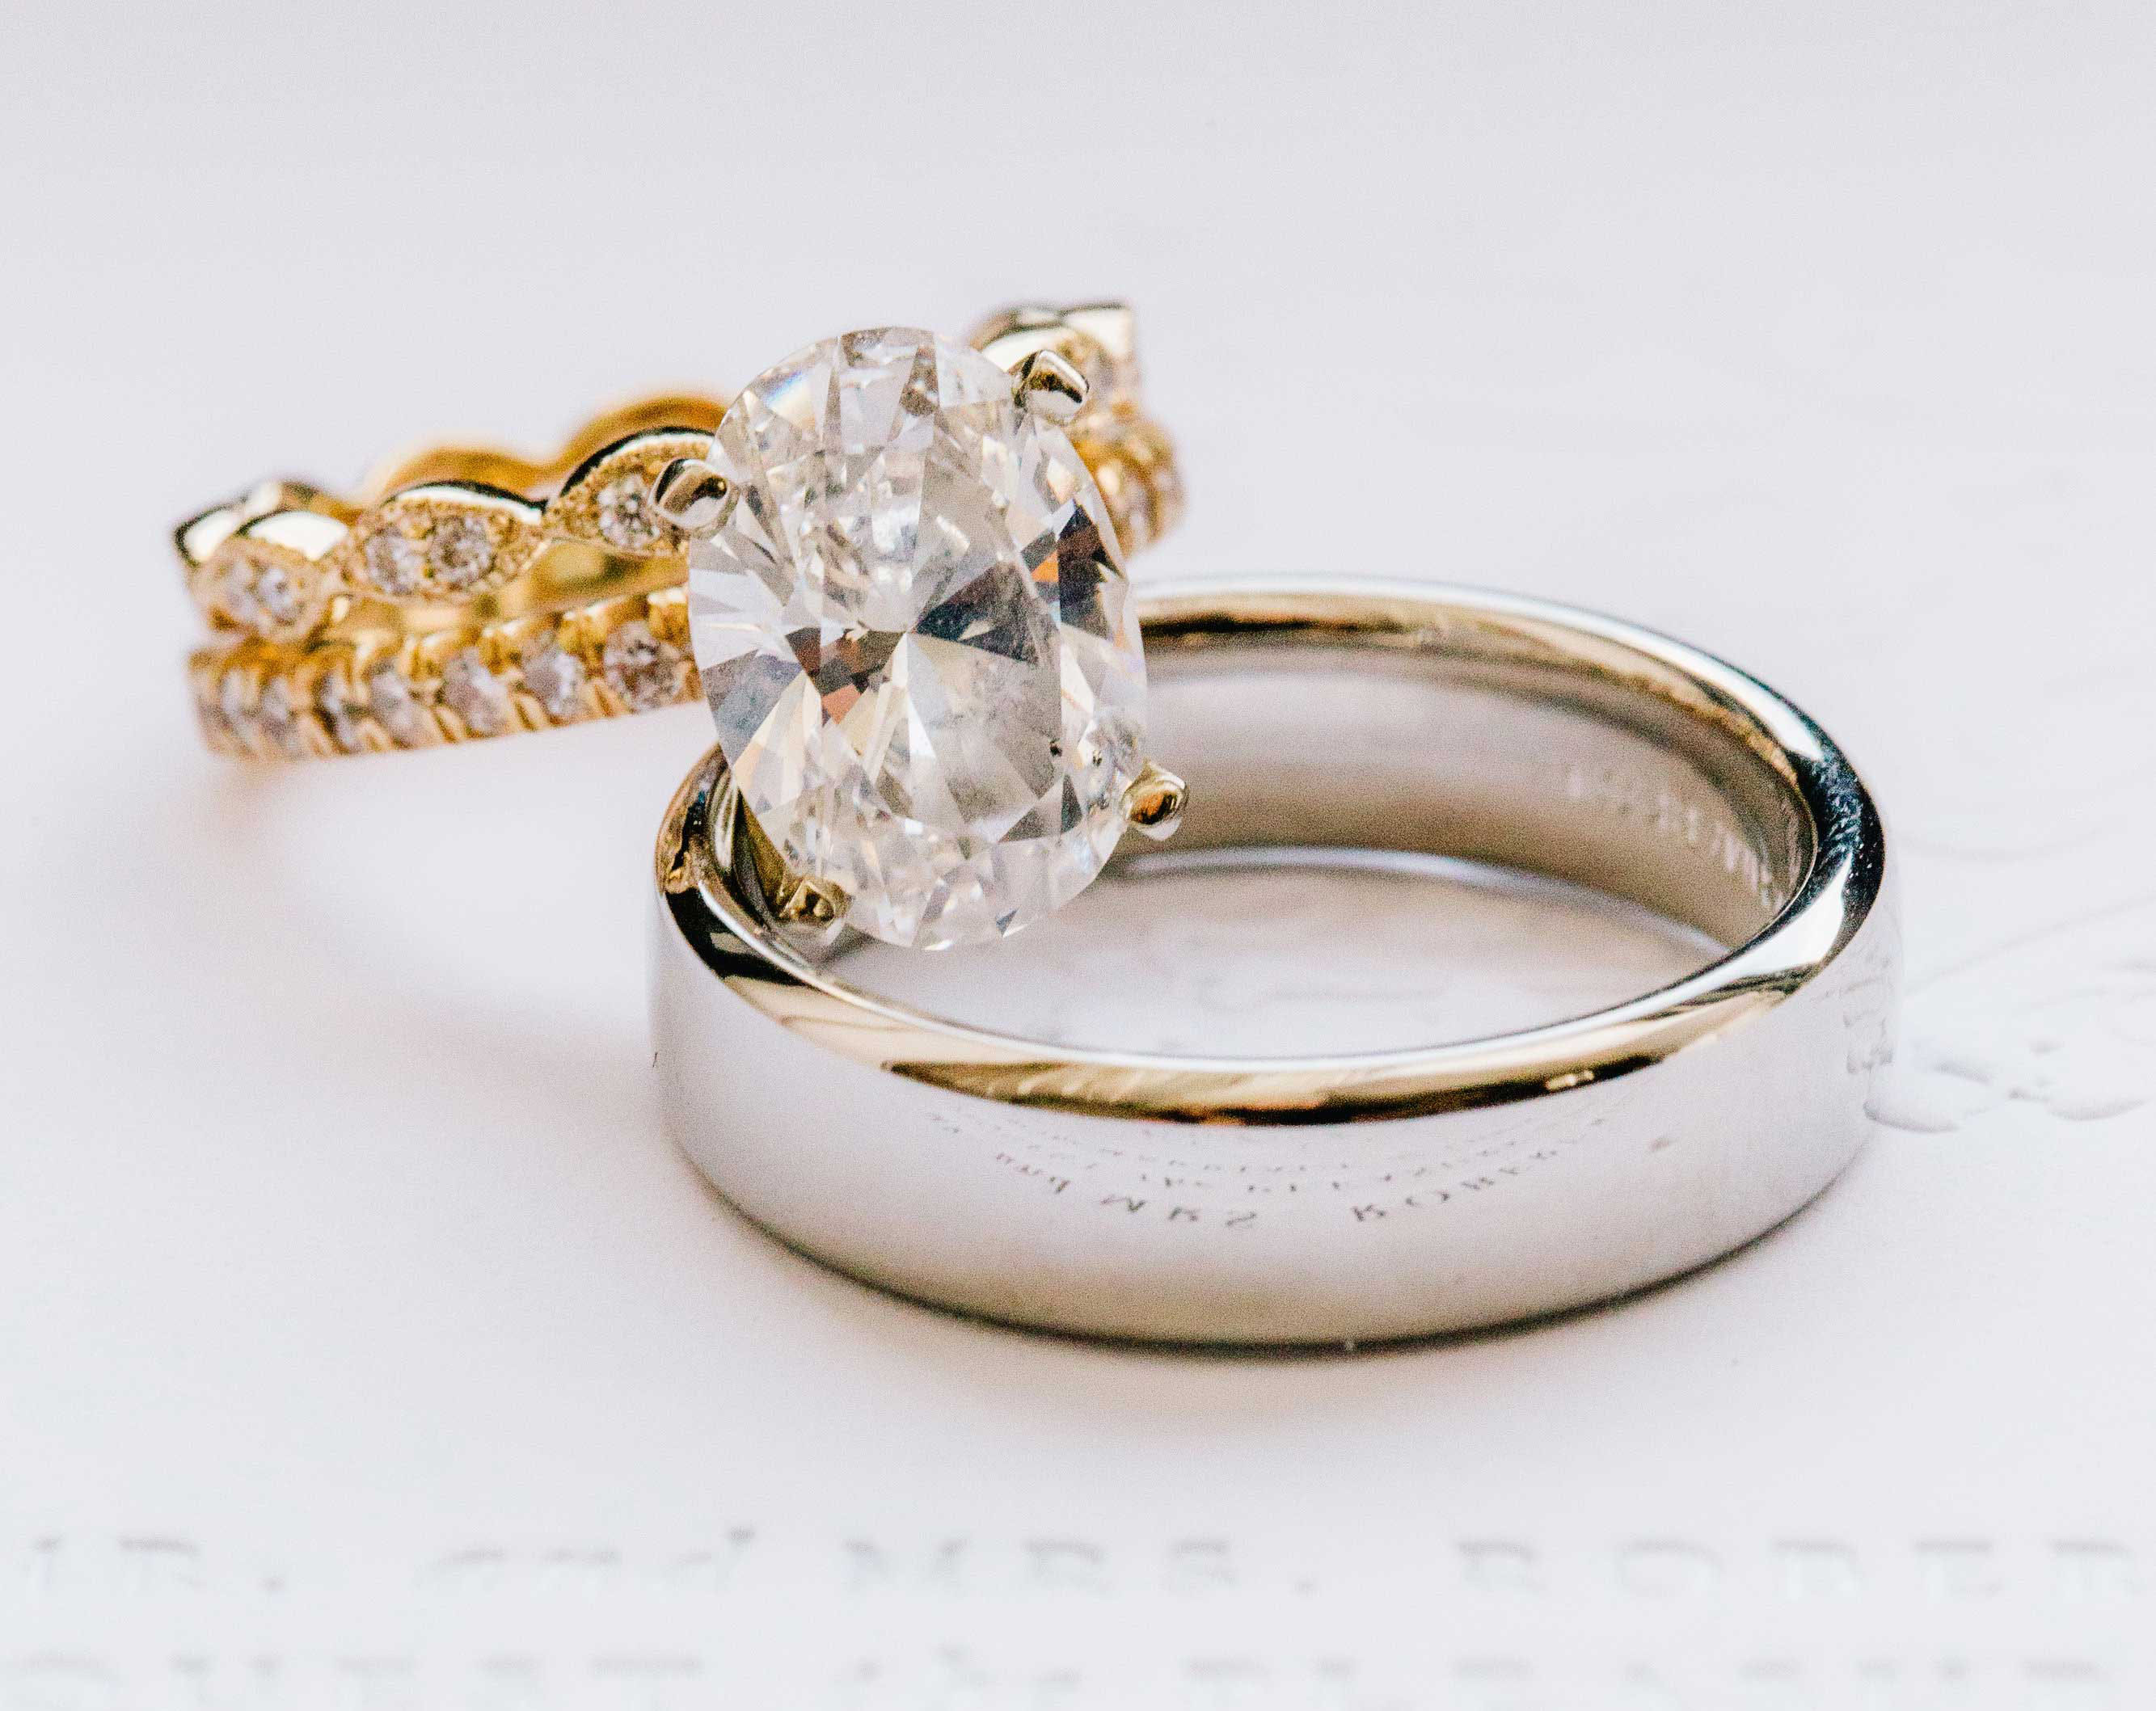 laura prepon engagement ring inspiration, oval solitaire, pave yellow gold band